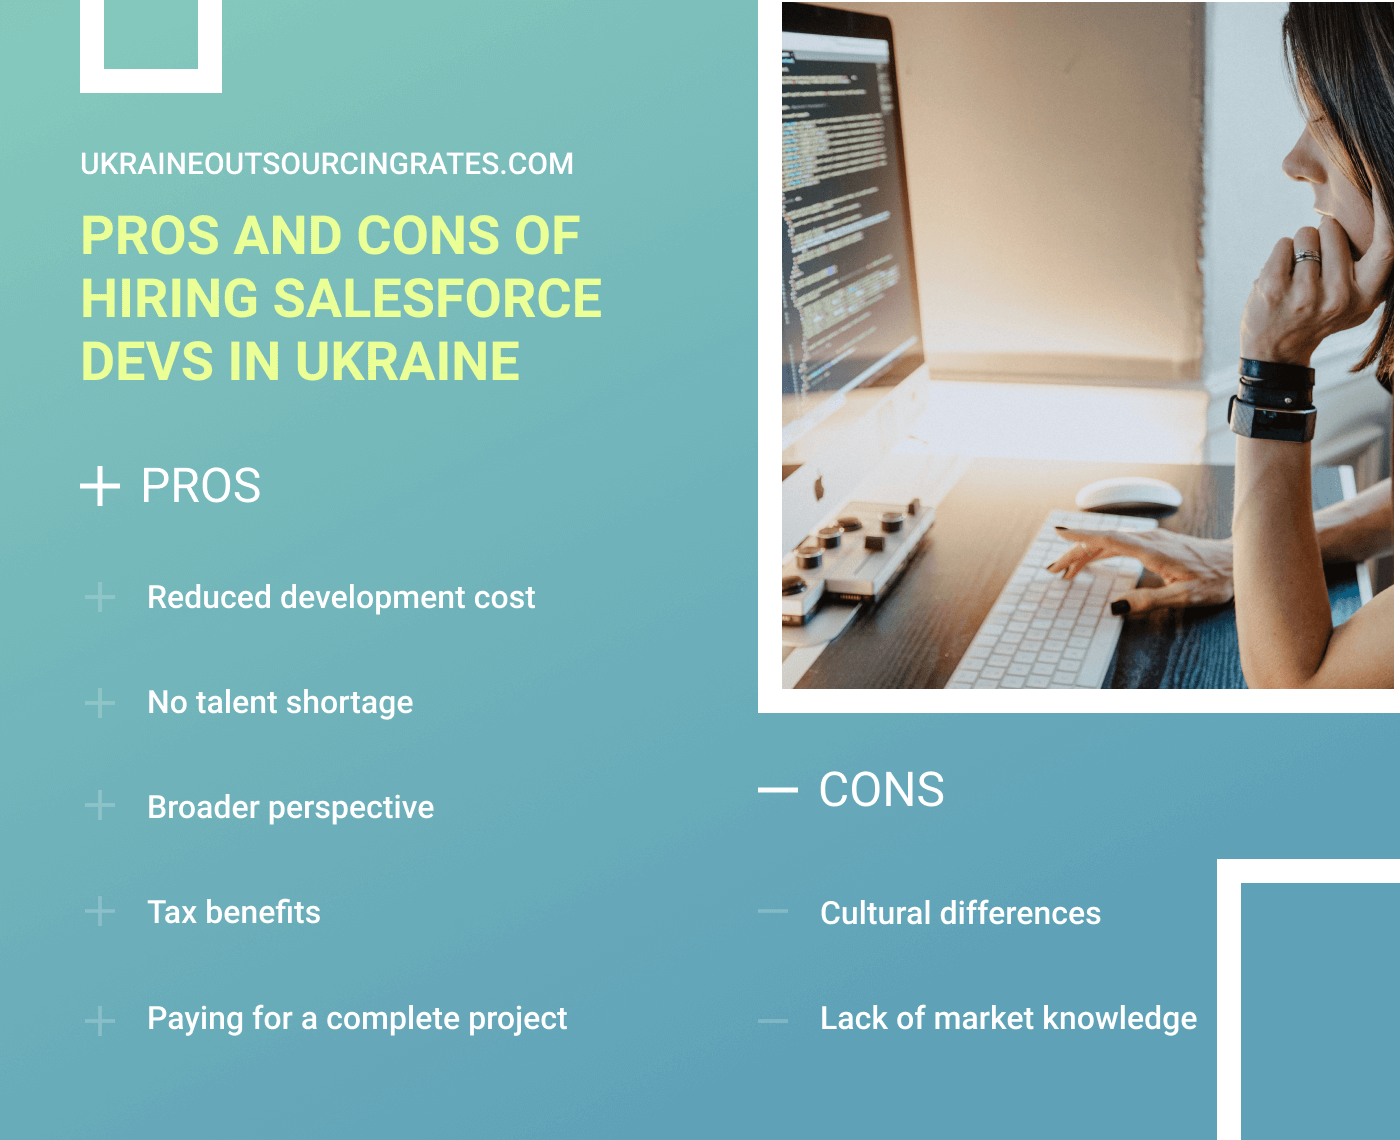 pros and cons of hiring salesforce coders in ukraine